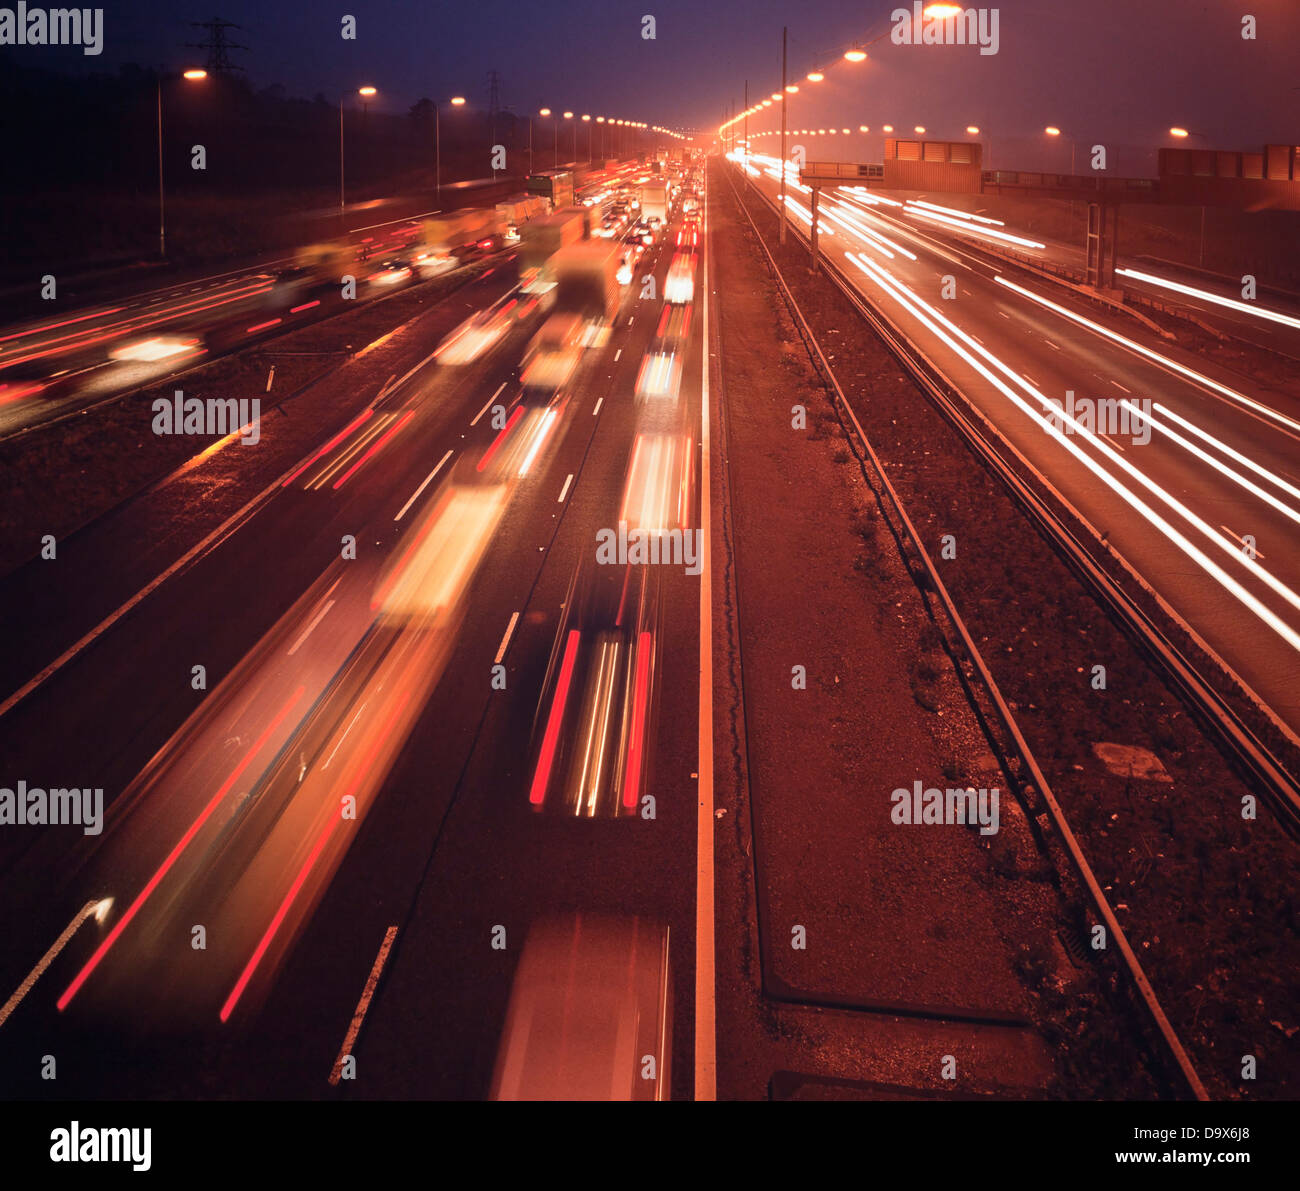 Motorway commuter traffic on the M1highway at night or late evening, UK - Stock Image